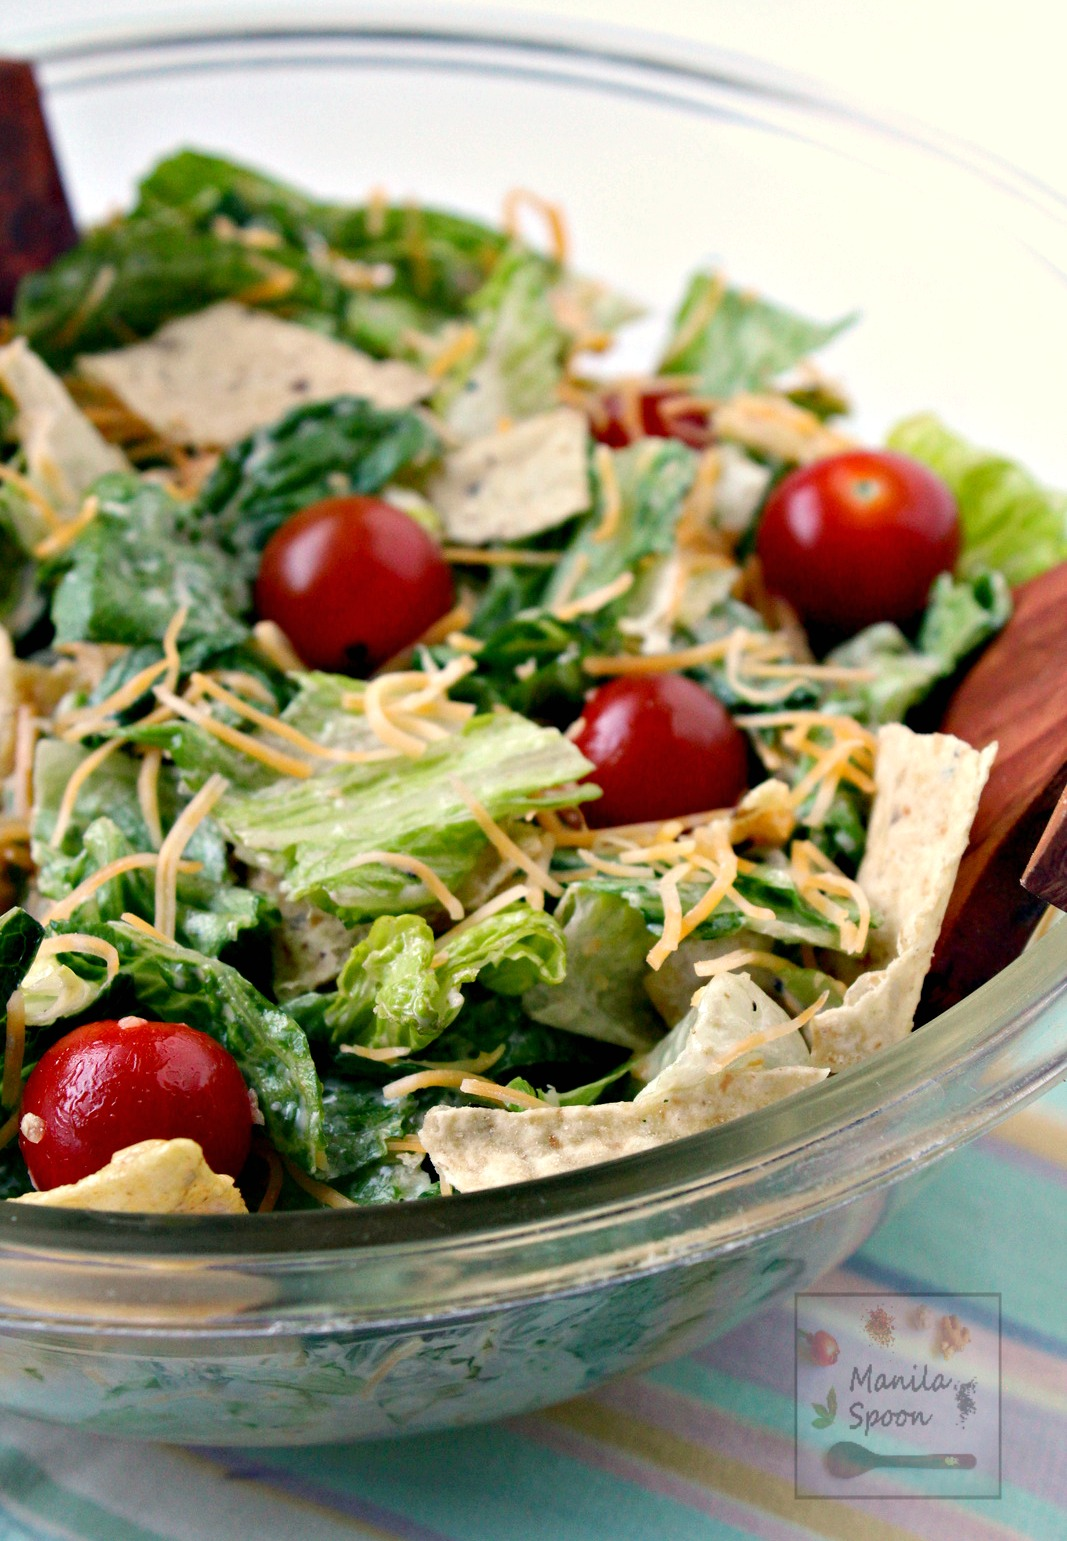 Crunchy tortillas and cumin-flavored dressing give this southwestern-style salad its delicious flavor! With few ingredients and just 5 minutes to make - it's a winner every time! | manilaspoon.com